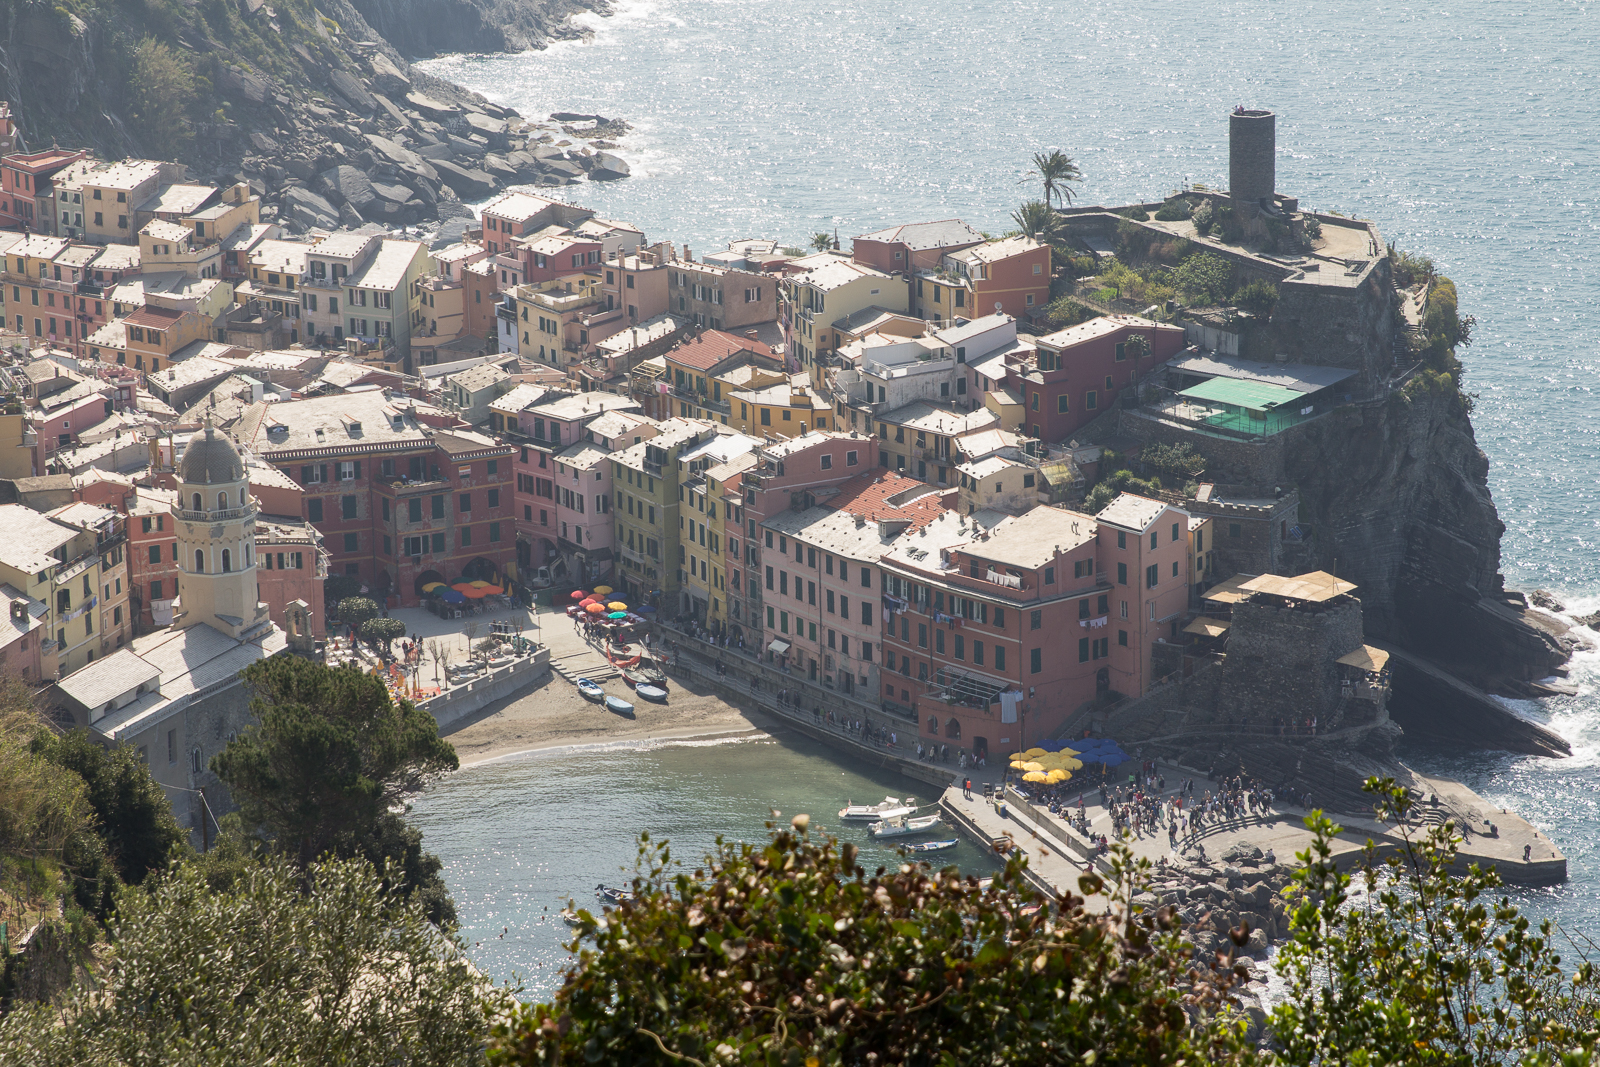 Vernazza as seen from the hiking trail